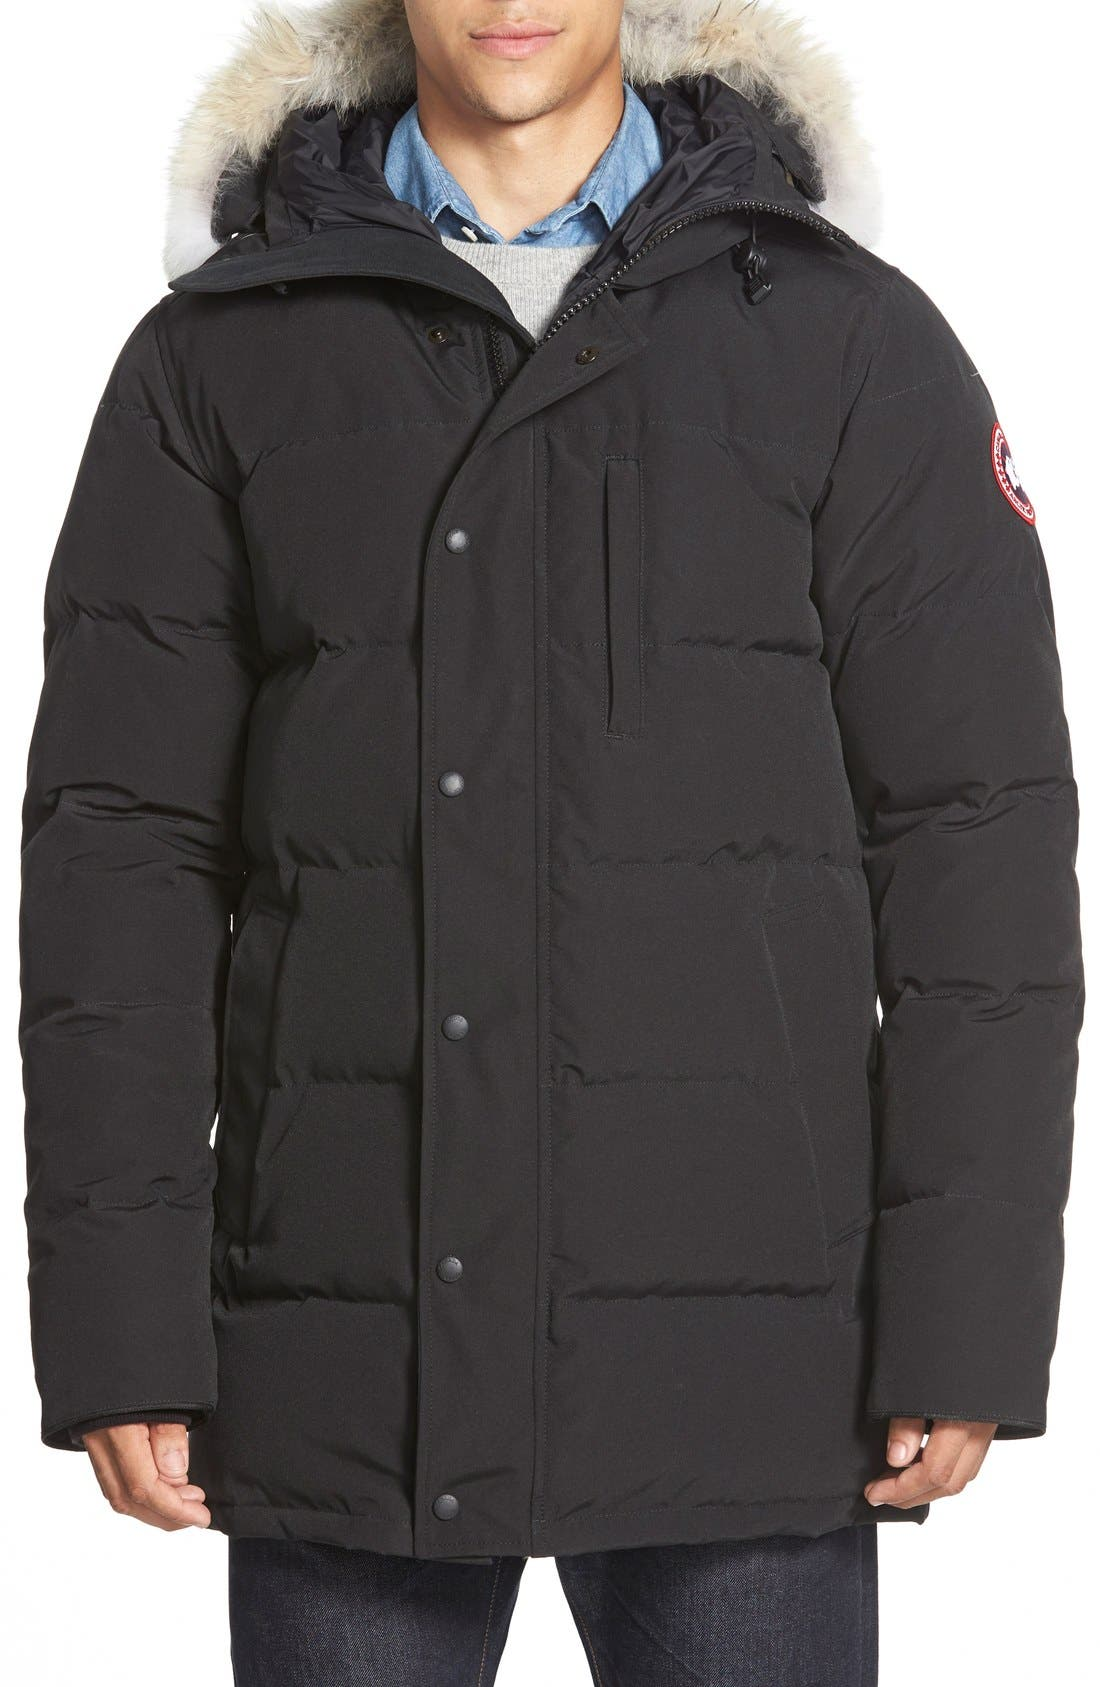 'Carson' Slim Fit Hooded Packable Parka with Genuine Coyote Fur Trim,                             Main thumbnail 1, color,                             GRAPHITE